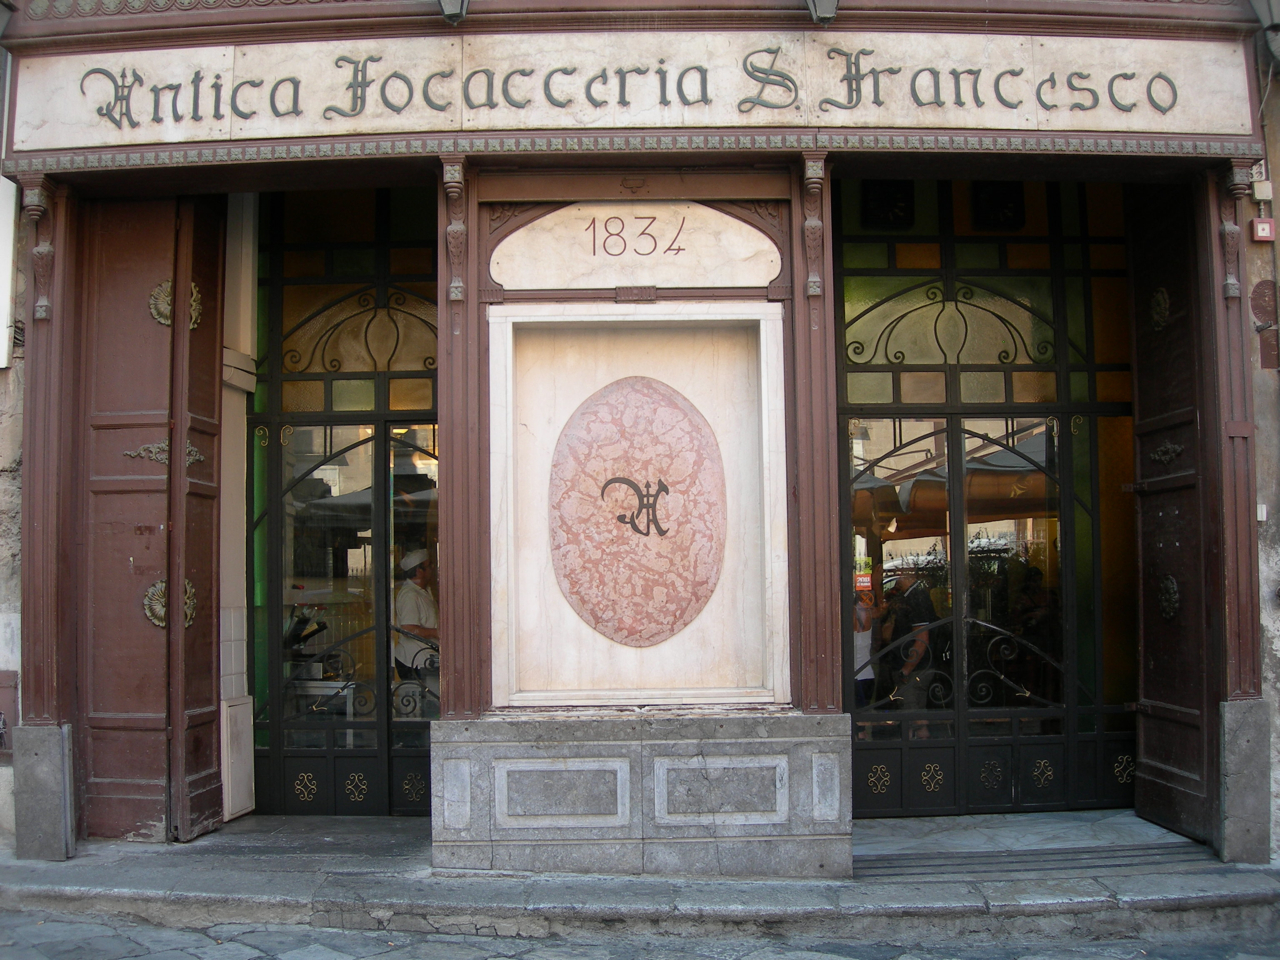 The Antica Focacceria San Francesco, Palermo